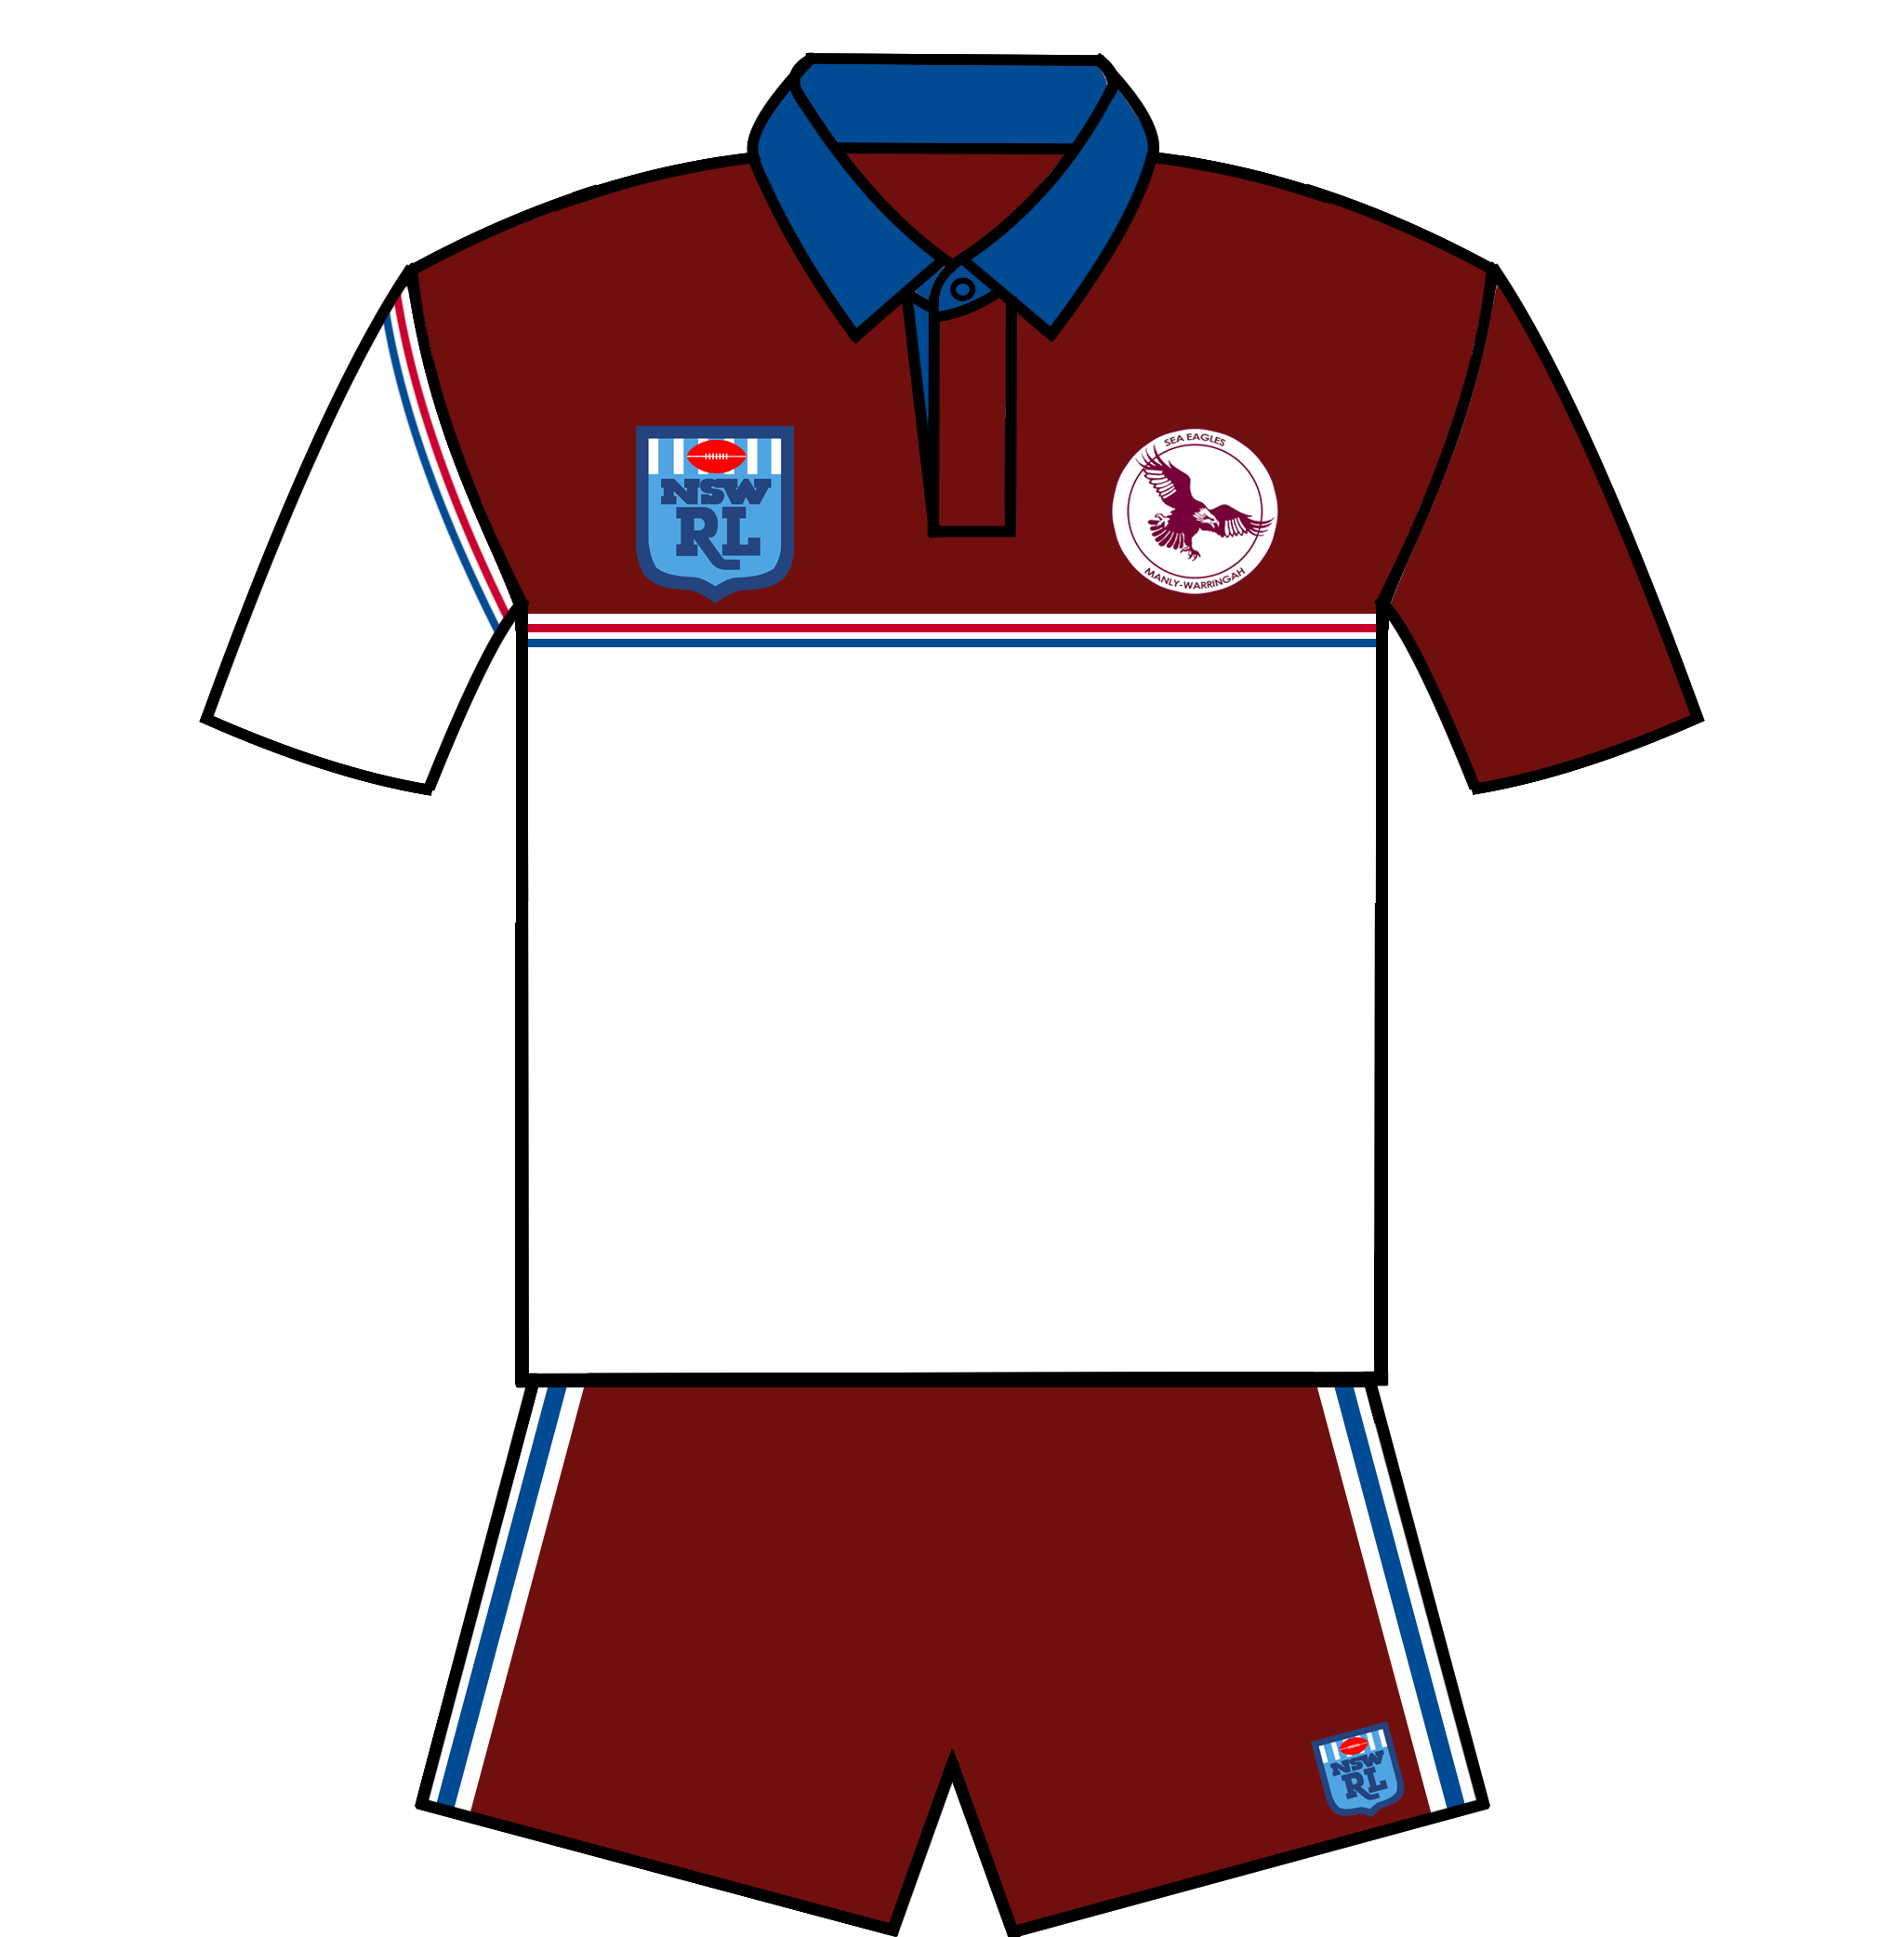 File:Manly-Warringah Jersey 1993.png - Wikimedia Commons